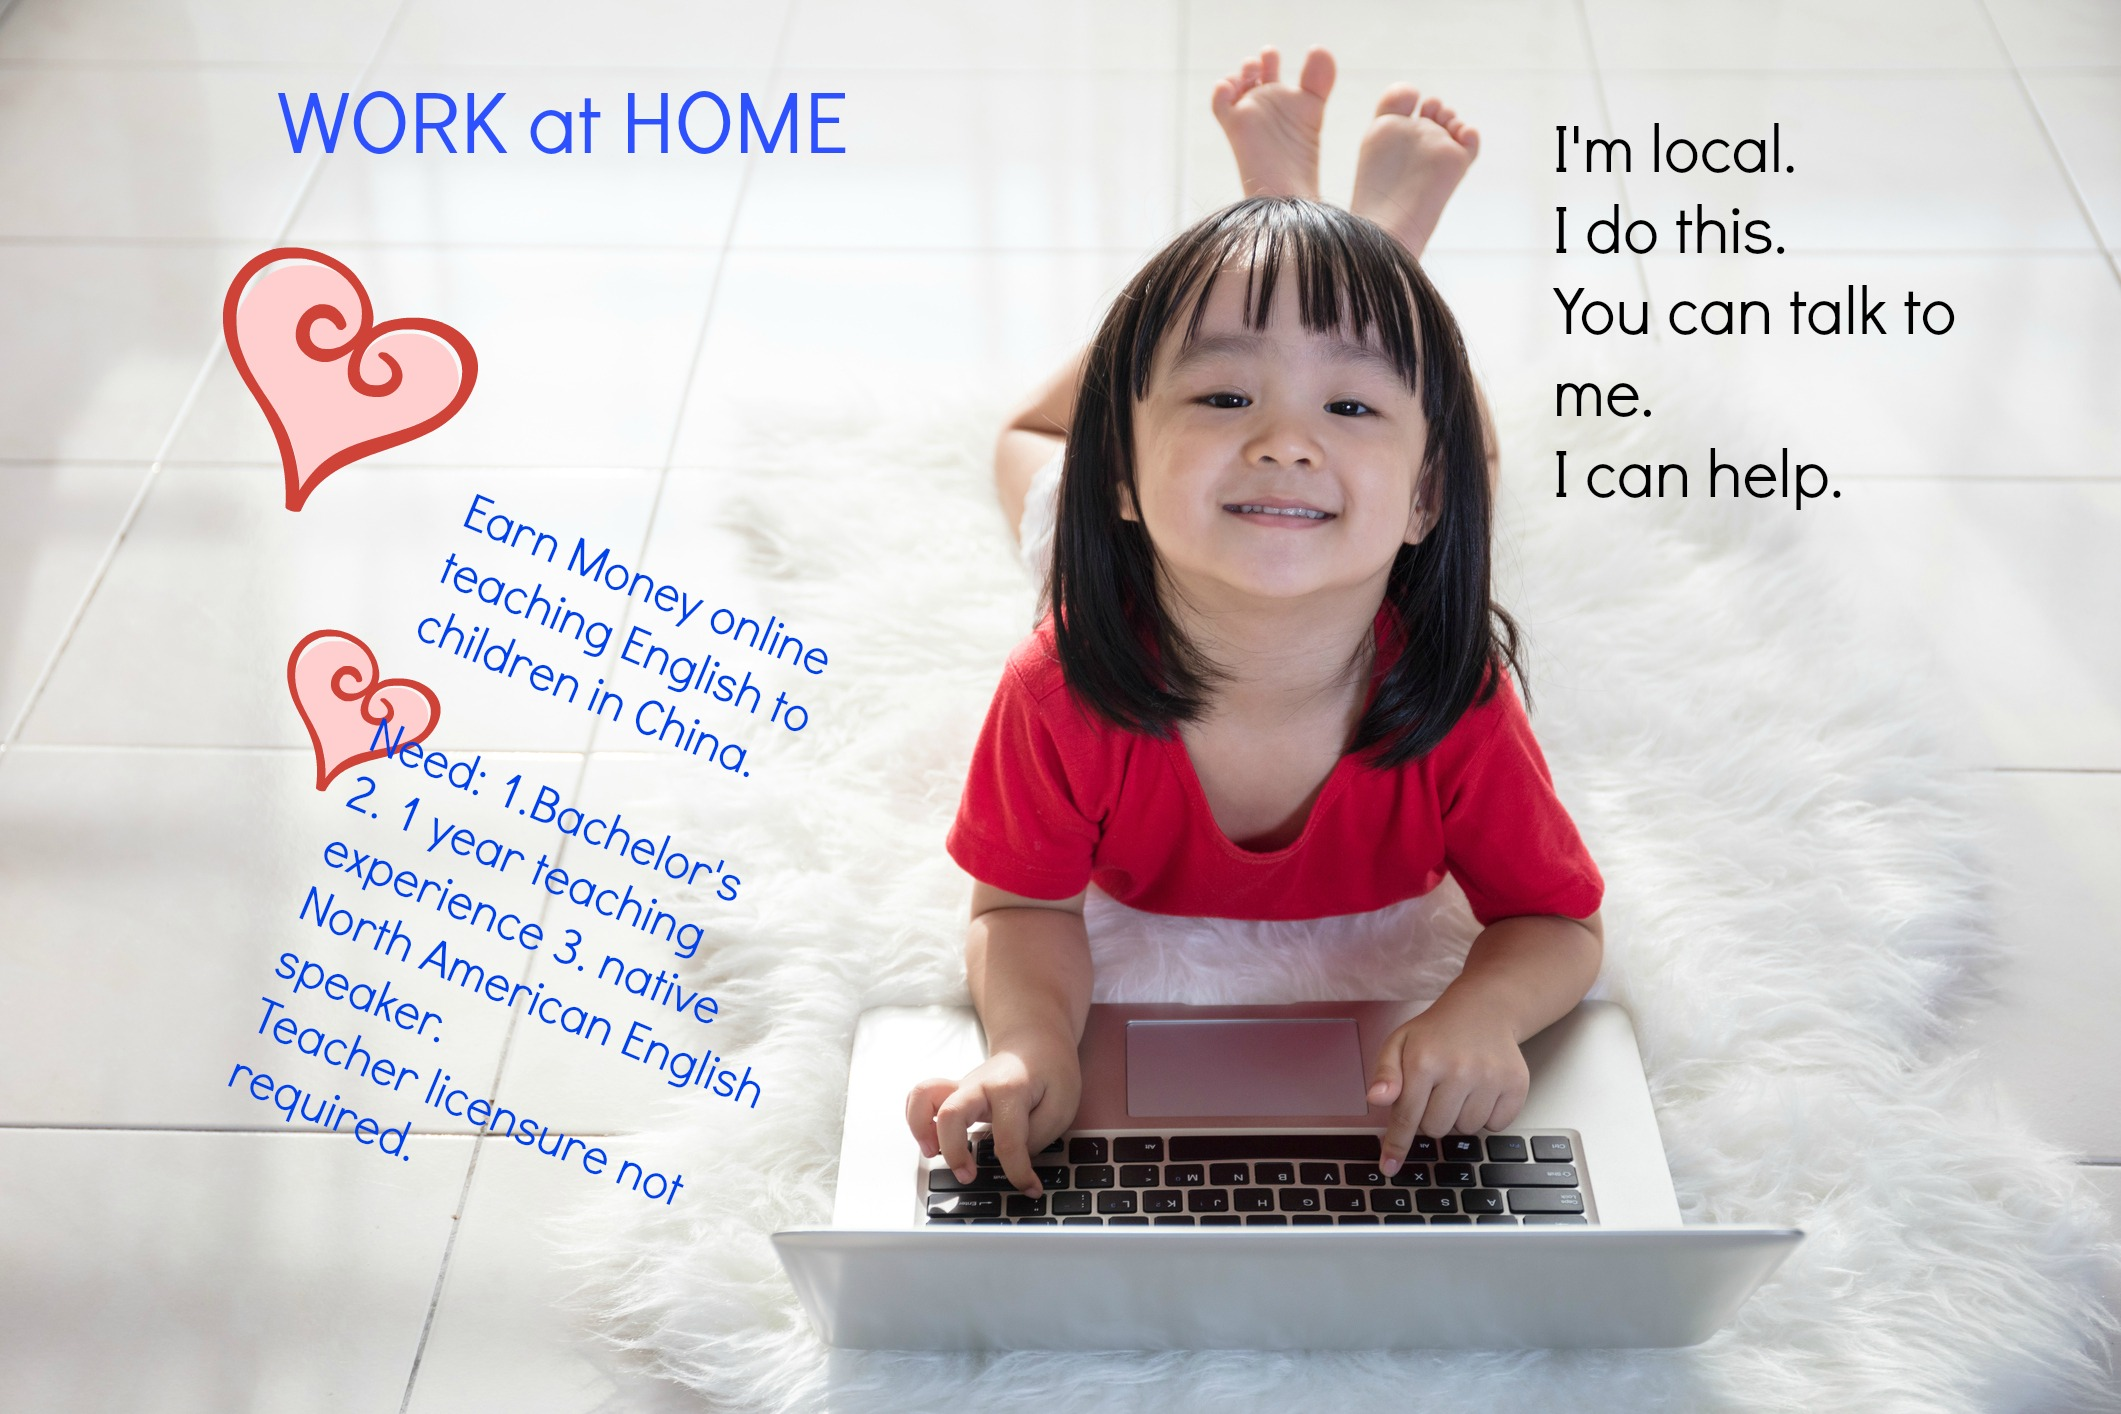 teach at home online archives marietta and beyond rh mariettaandbeyond com teach at home online teach at home woodshop craft class business